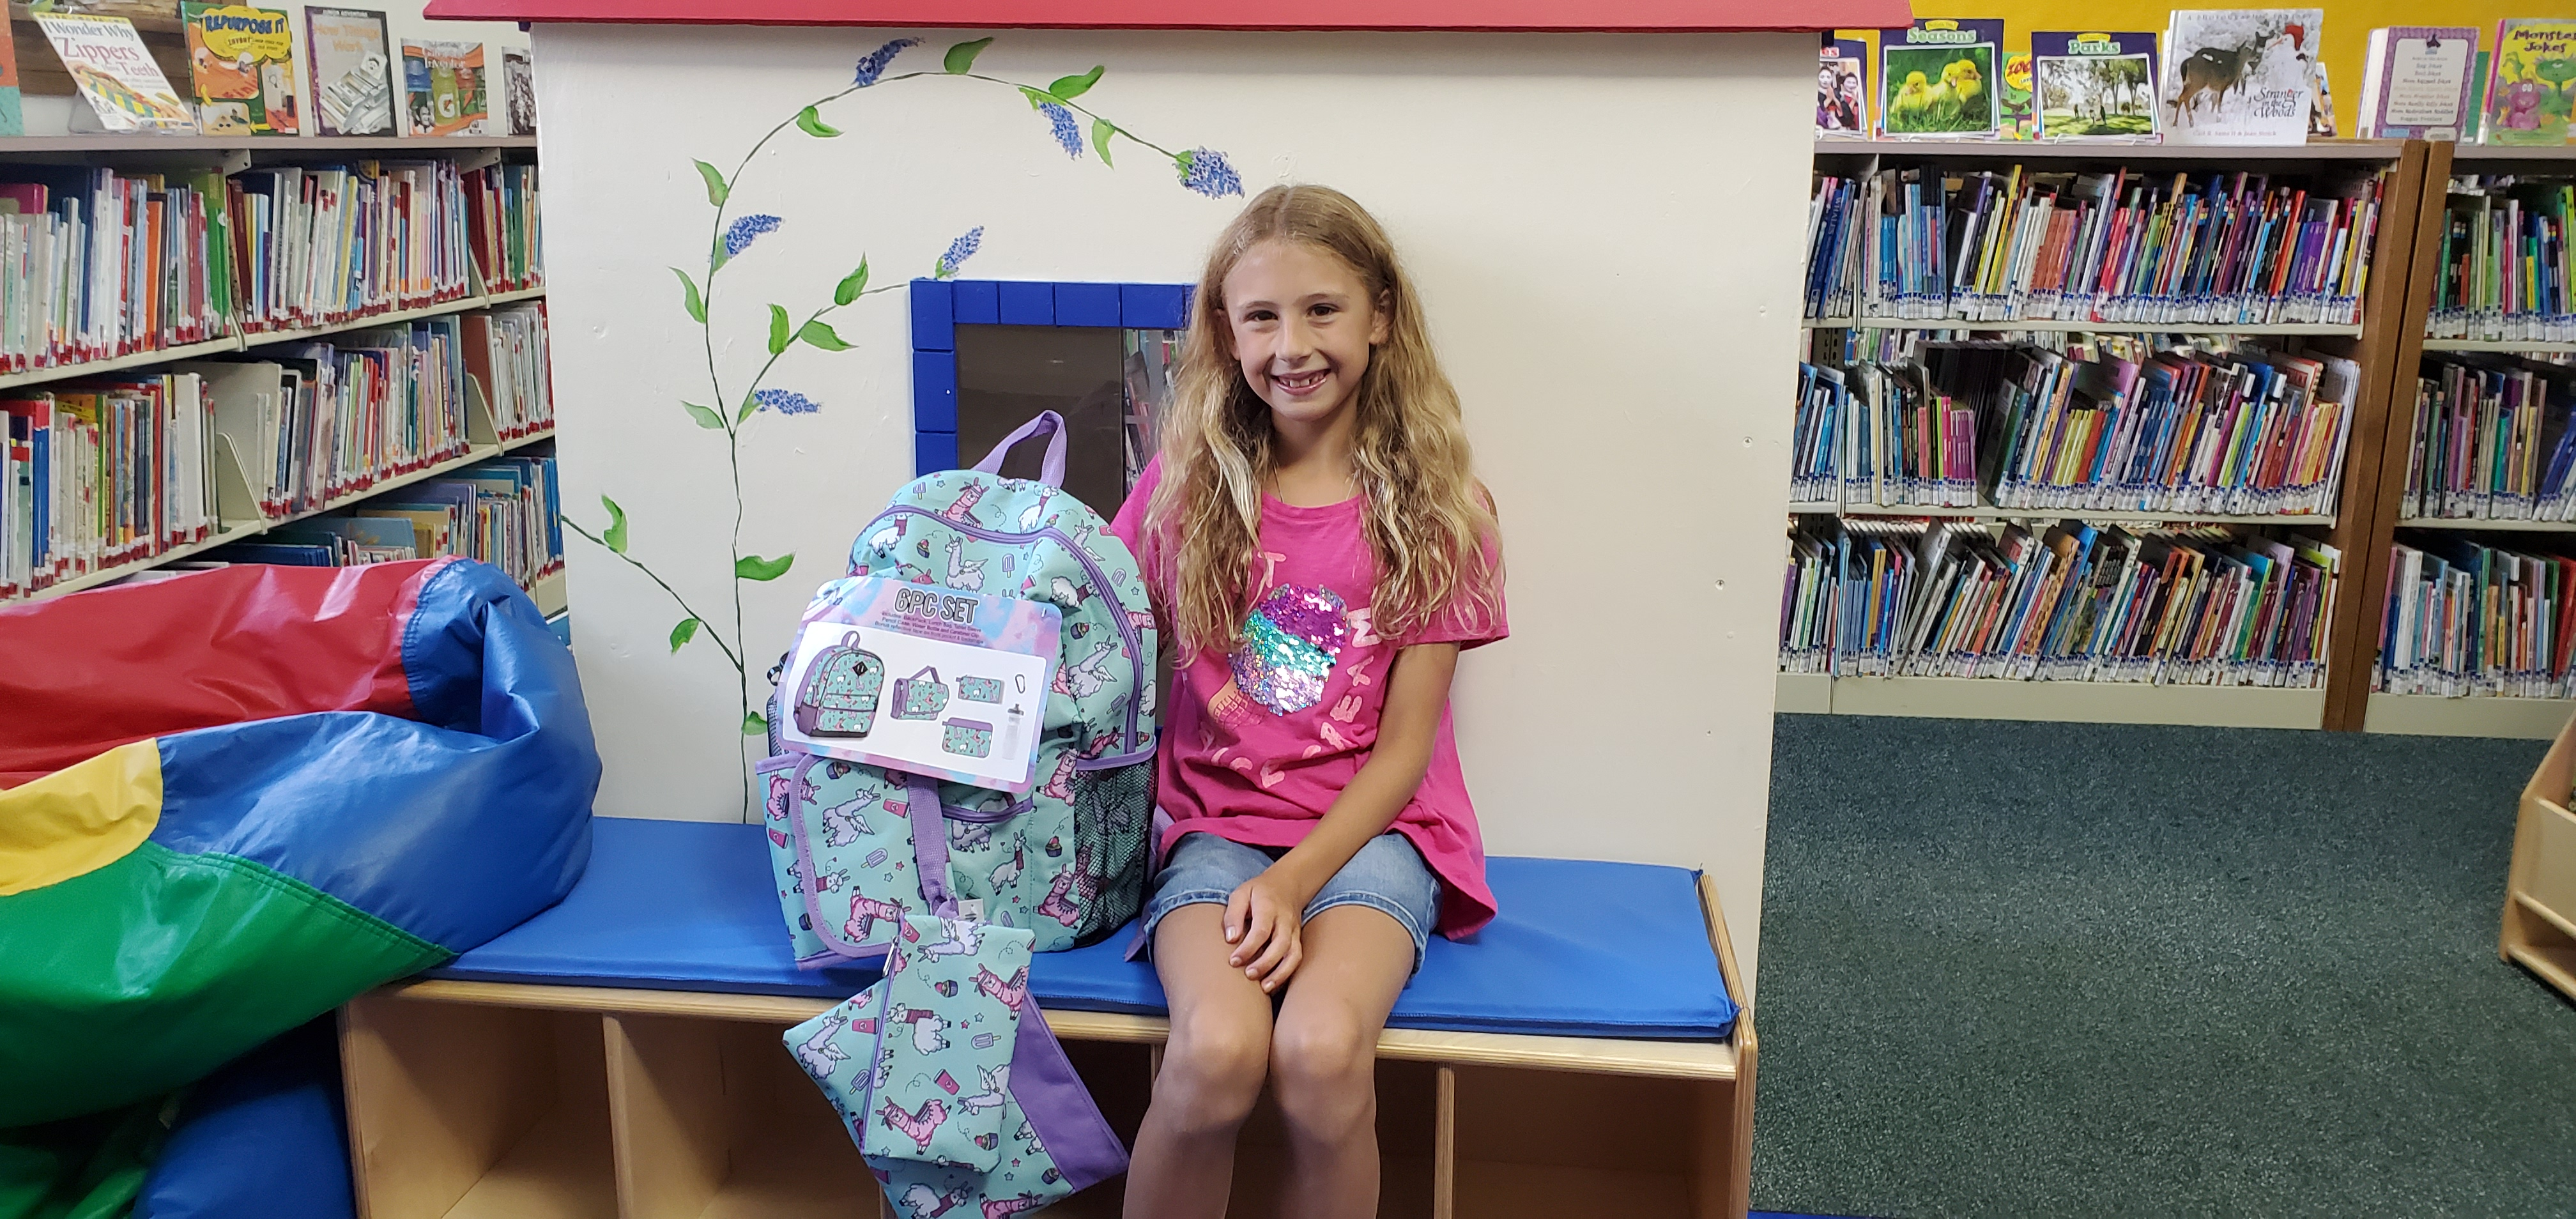 We held a special drawing for older kids who participated in the Summer Reading program. Jayanna Pateeto was the first recipient and is shown here with her awesome new backpack set!